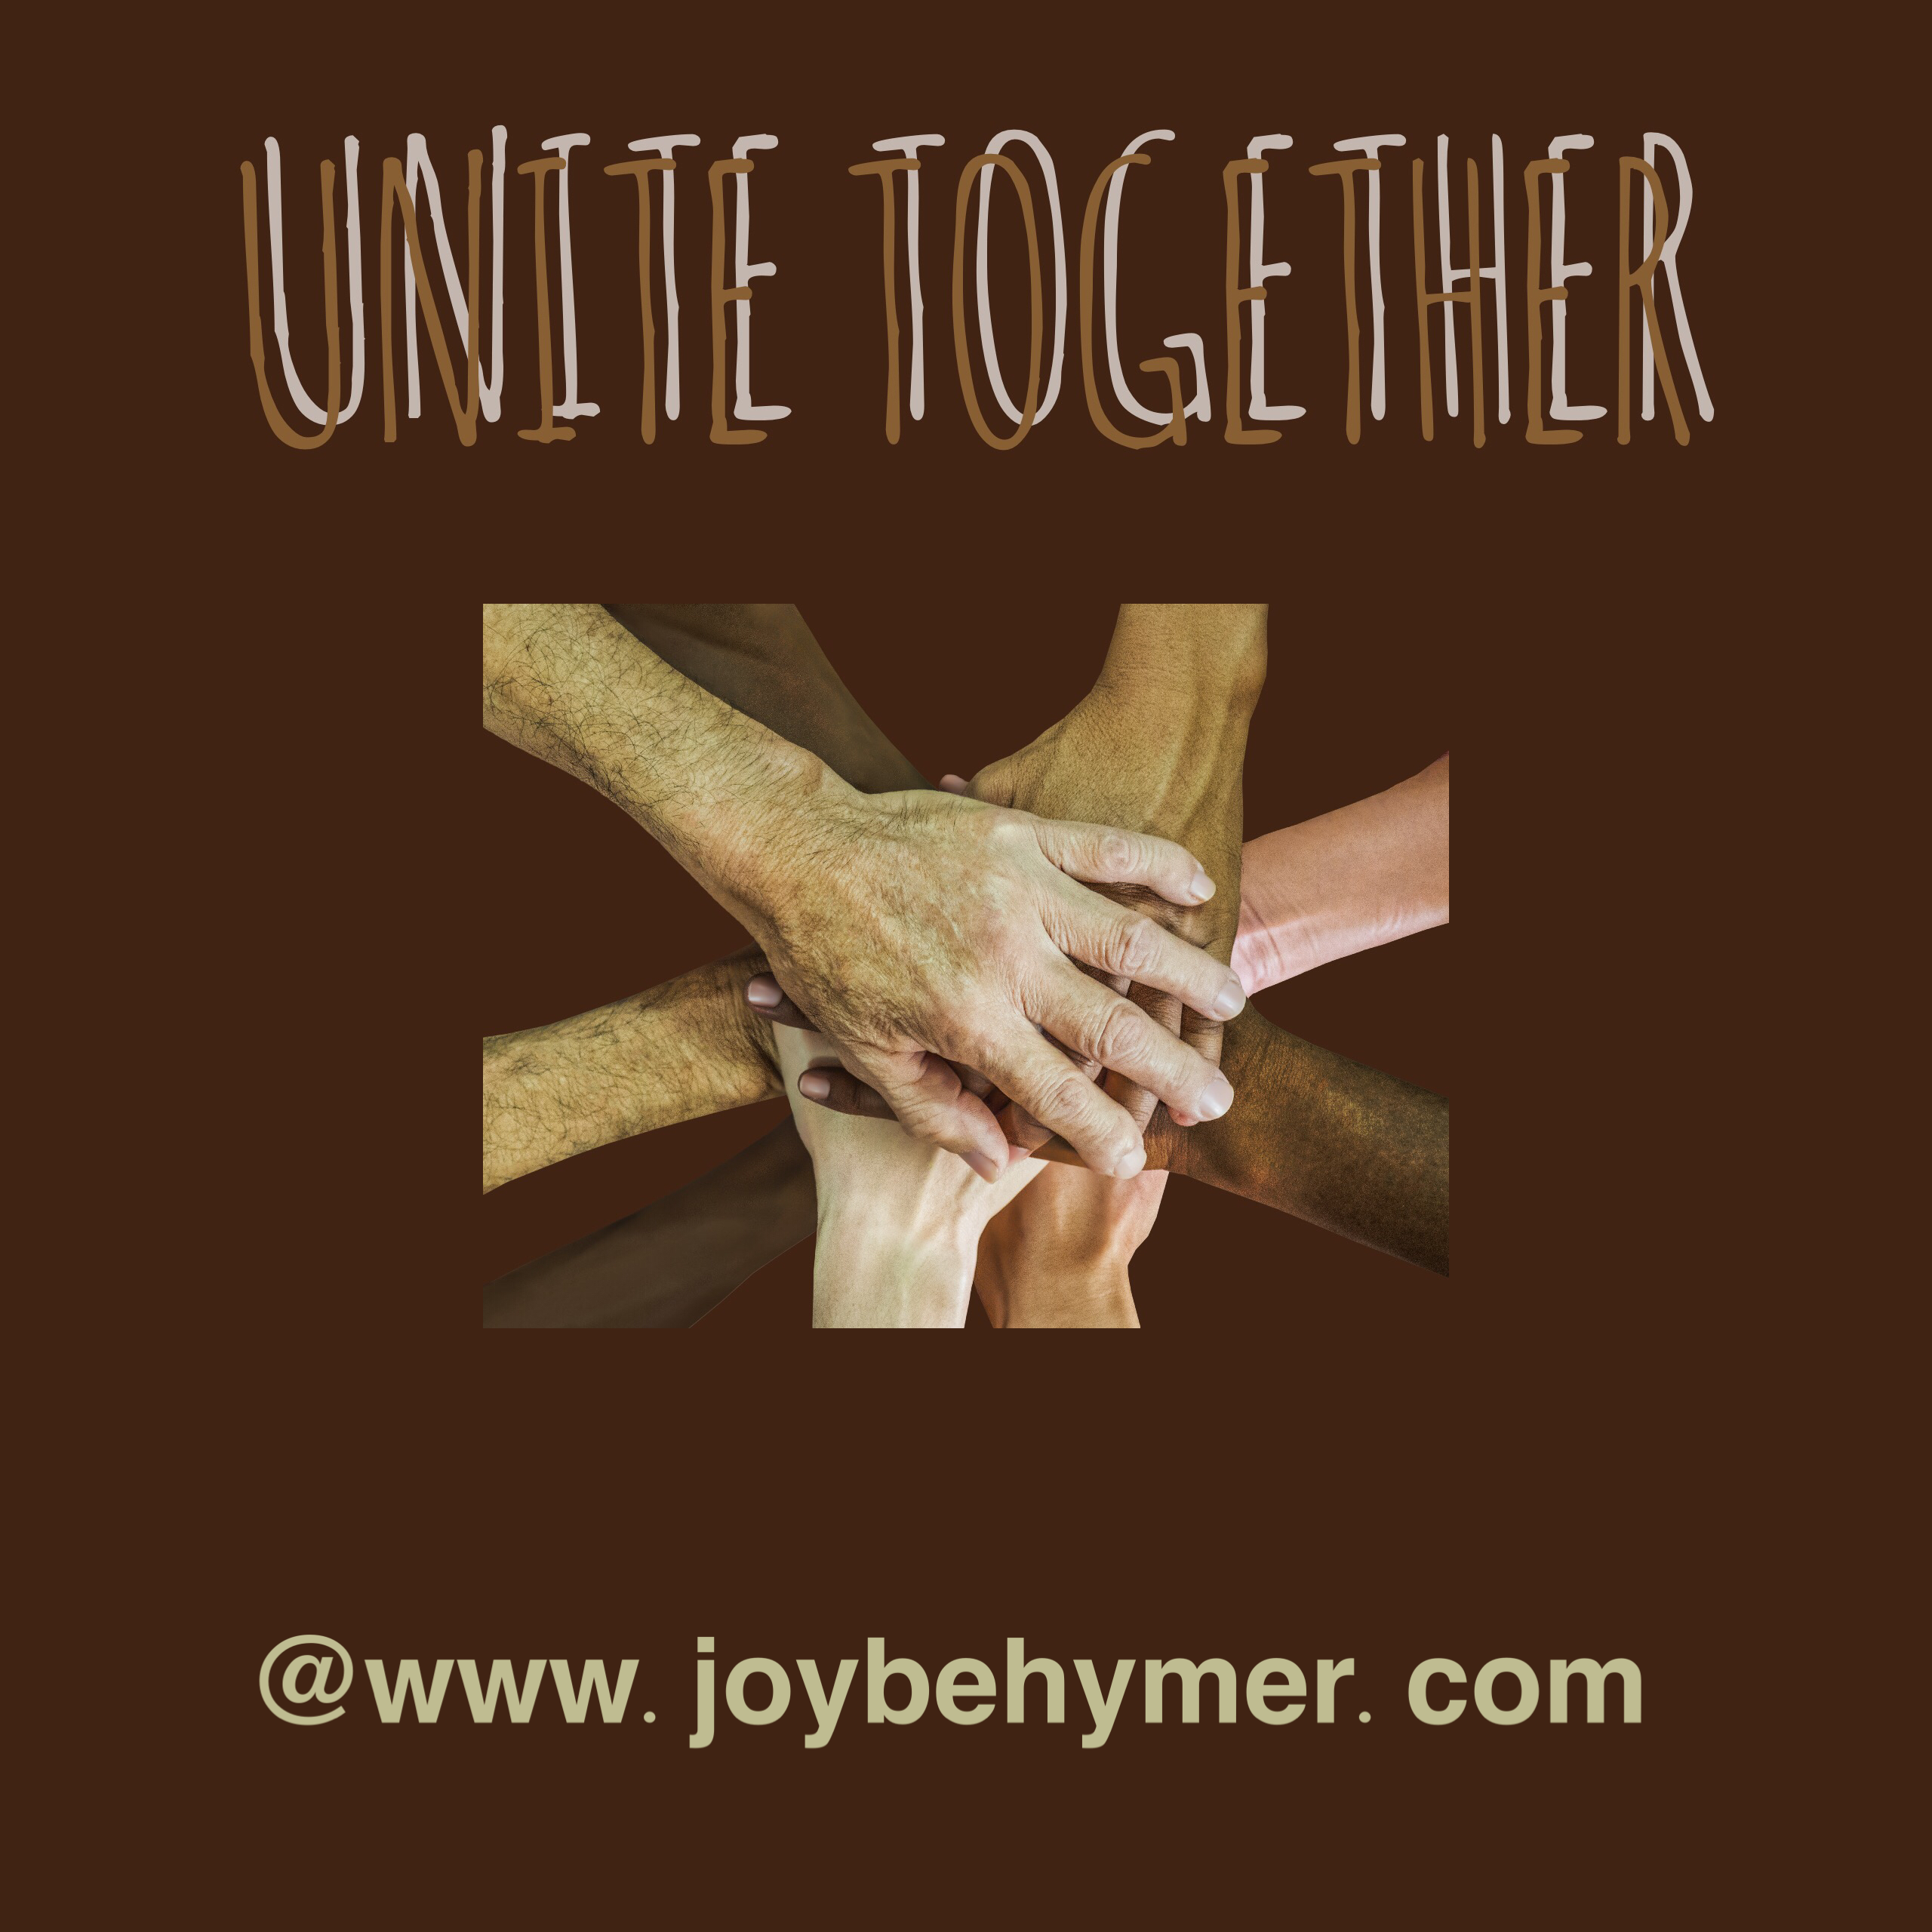 Unite together